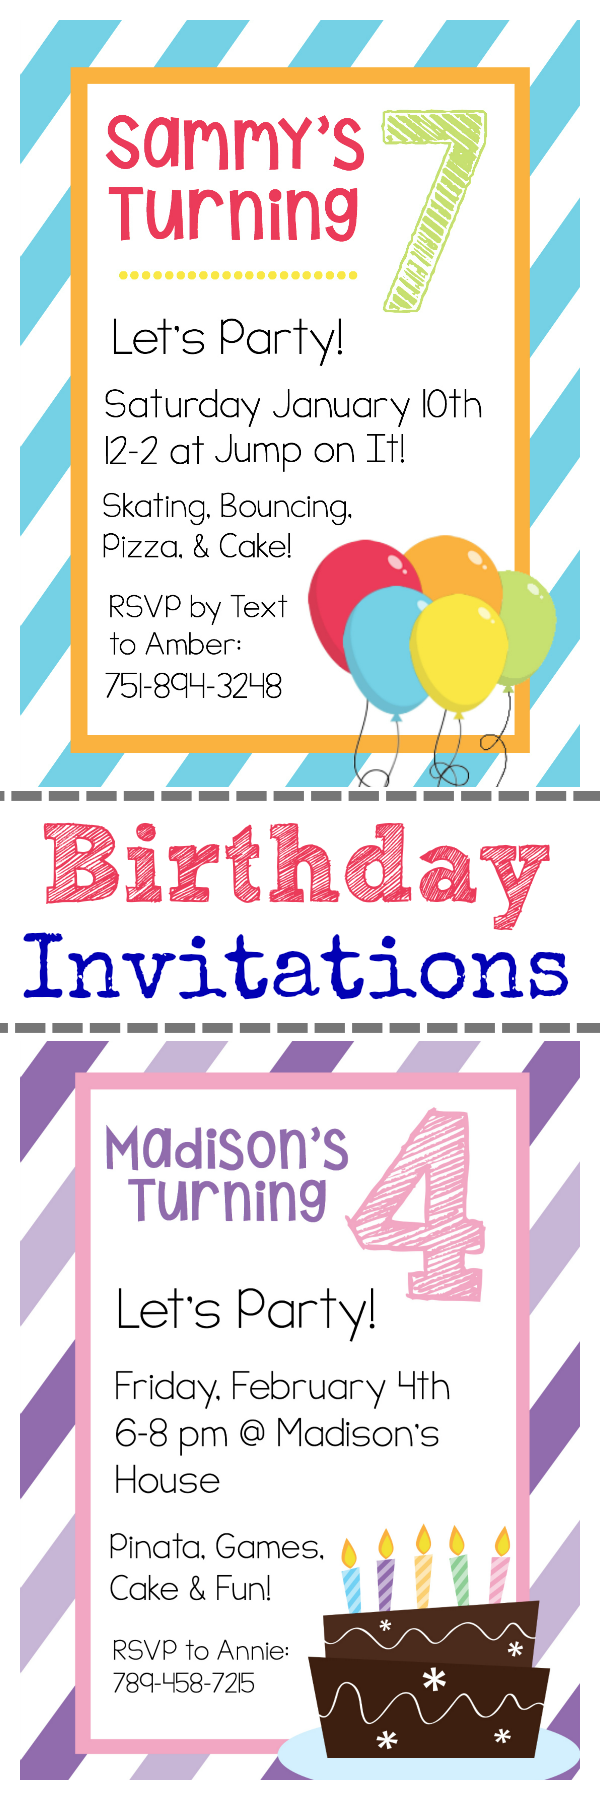 image relating to Free Printable Left Right Birthday Game called Absolutely free Printable Birthday Invitation Templates